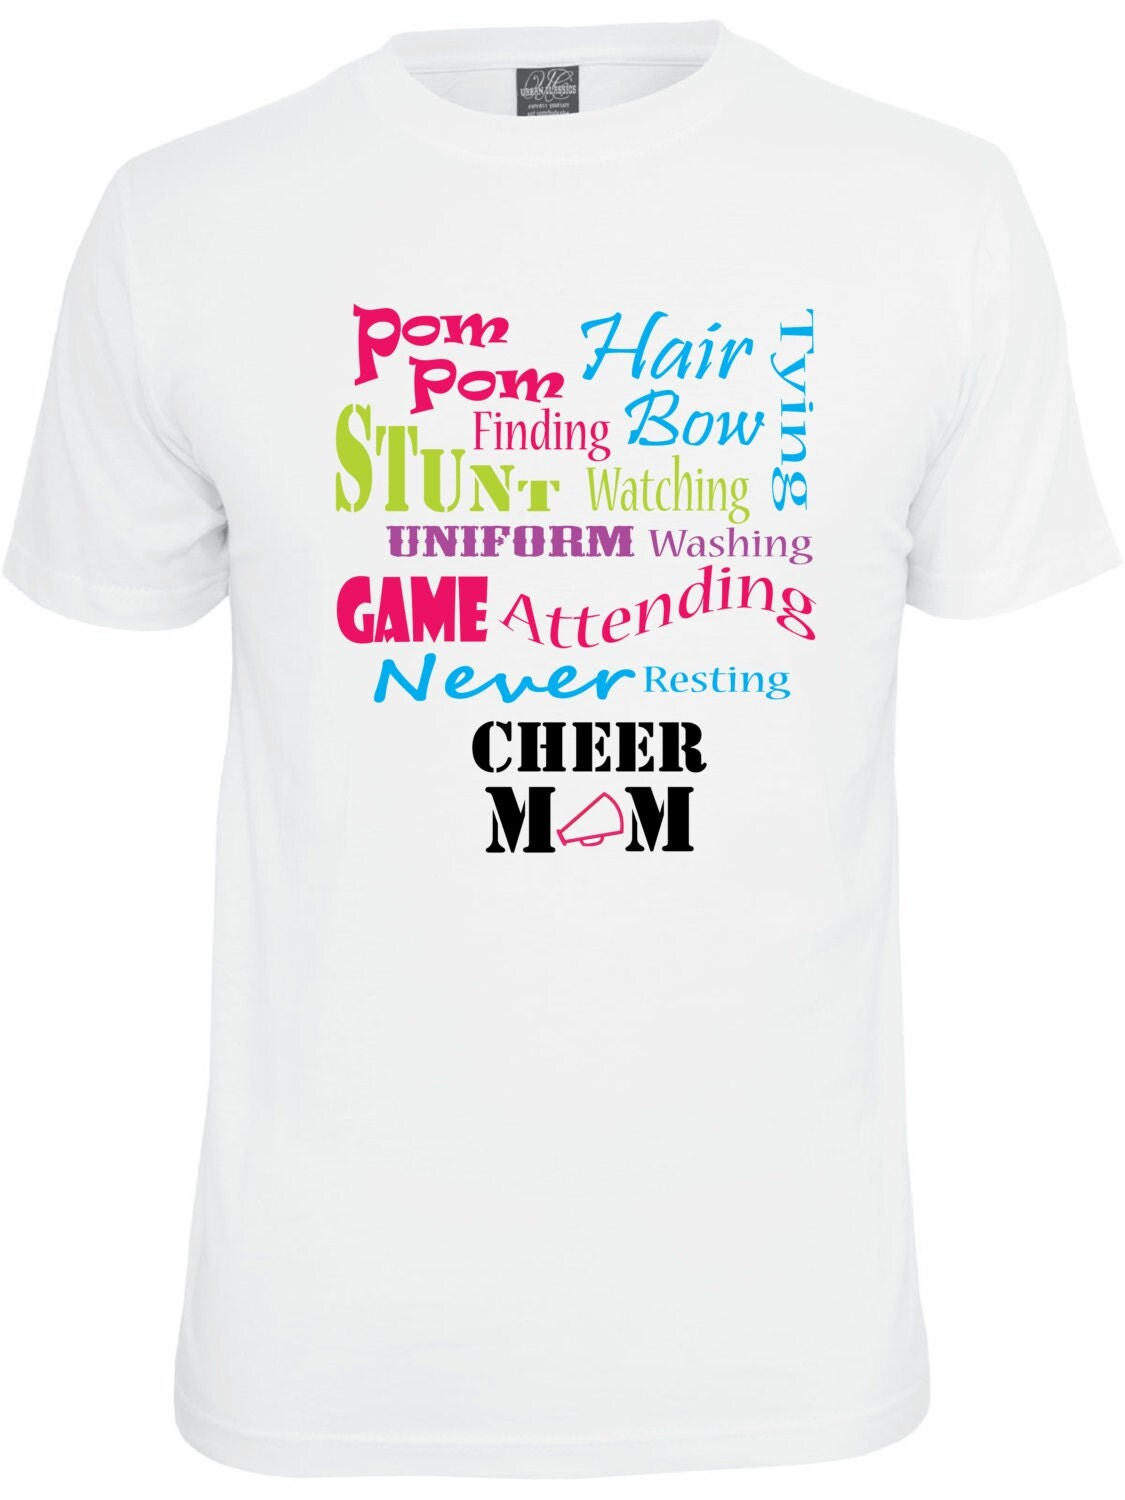 25+ unique Cheer mom ideas on Pinterest | Cheer stuff ... |Cheer Mom Shirts Sayings